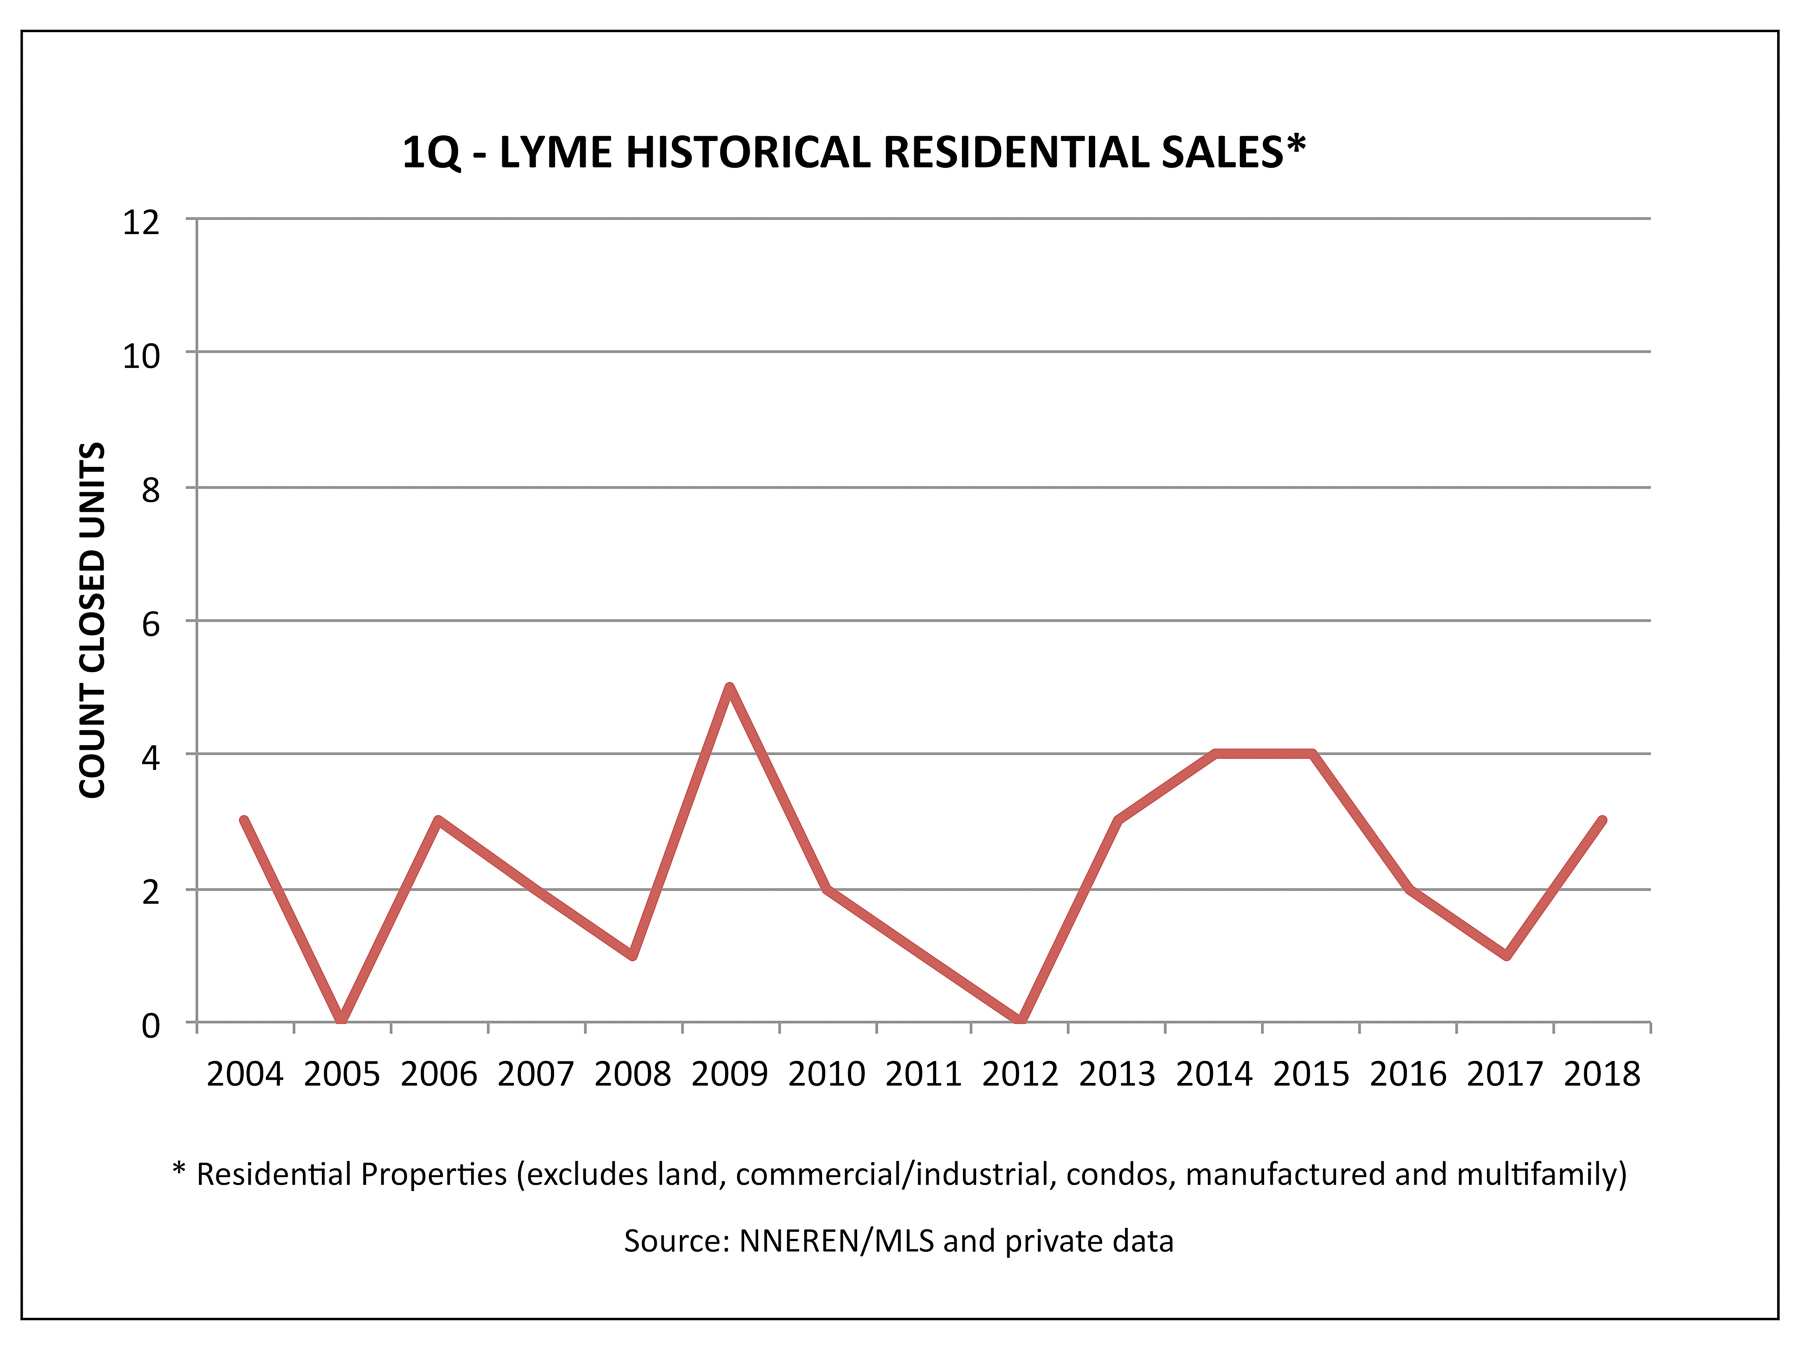 Lyme NH Real Estate - 1Q 2018 Historical Sales